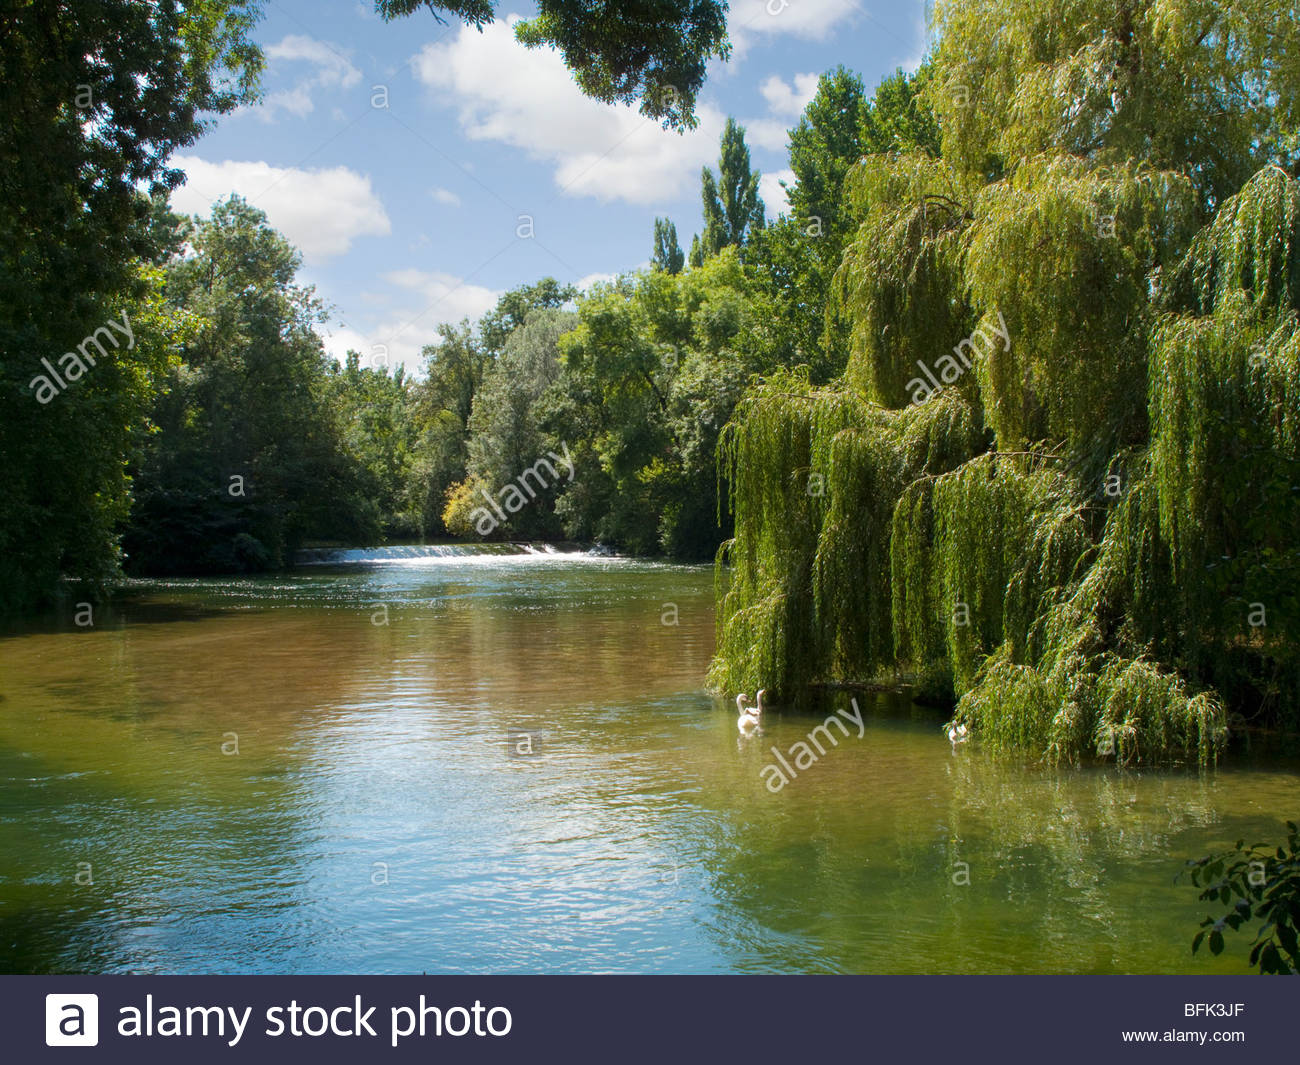 Swans in river lined by trees - Stock Image